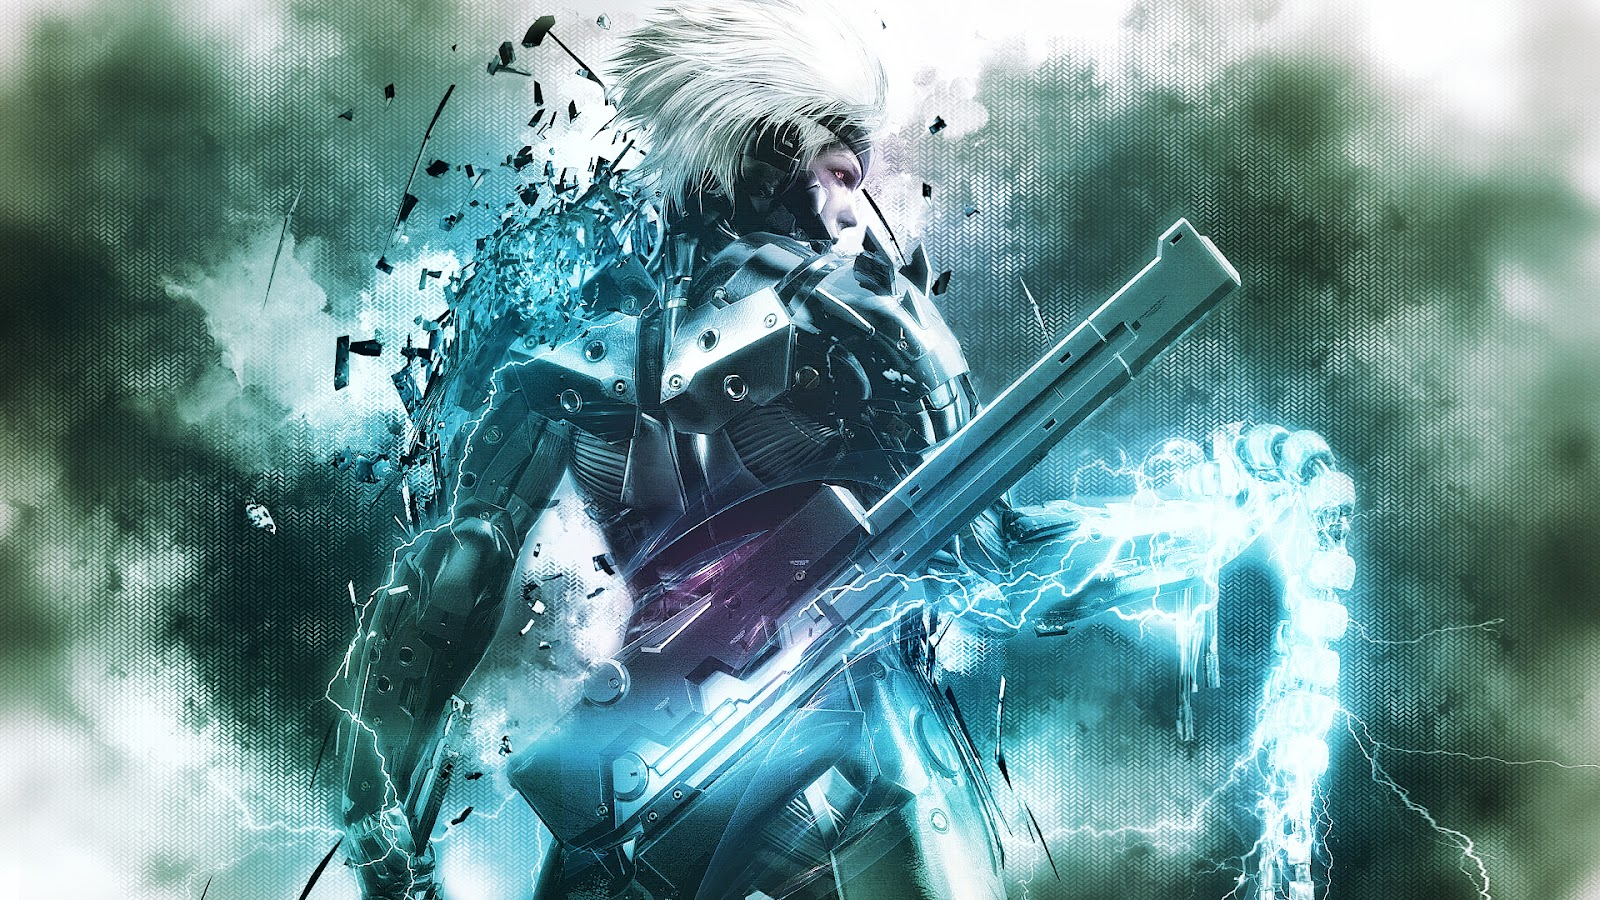 metal gear rising   raiden wallpaper by syan jin d4nxl5t Metal Gear Rising: Revengeance Wallpapers in HD